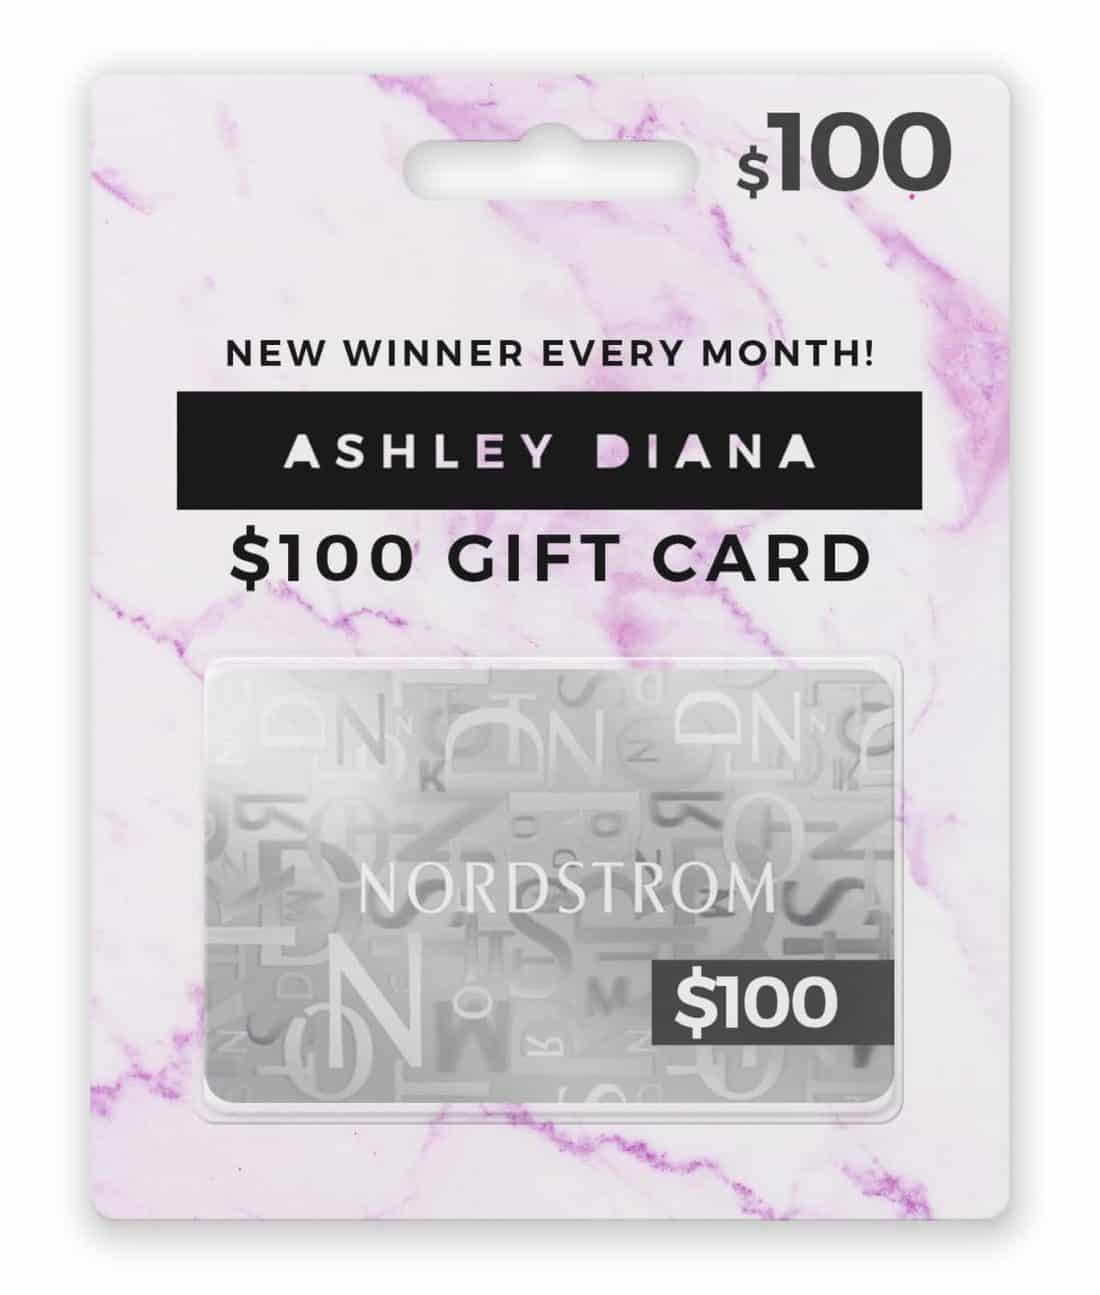 Ashley Diana Nordstrom Gift Card 800